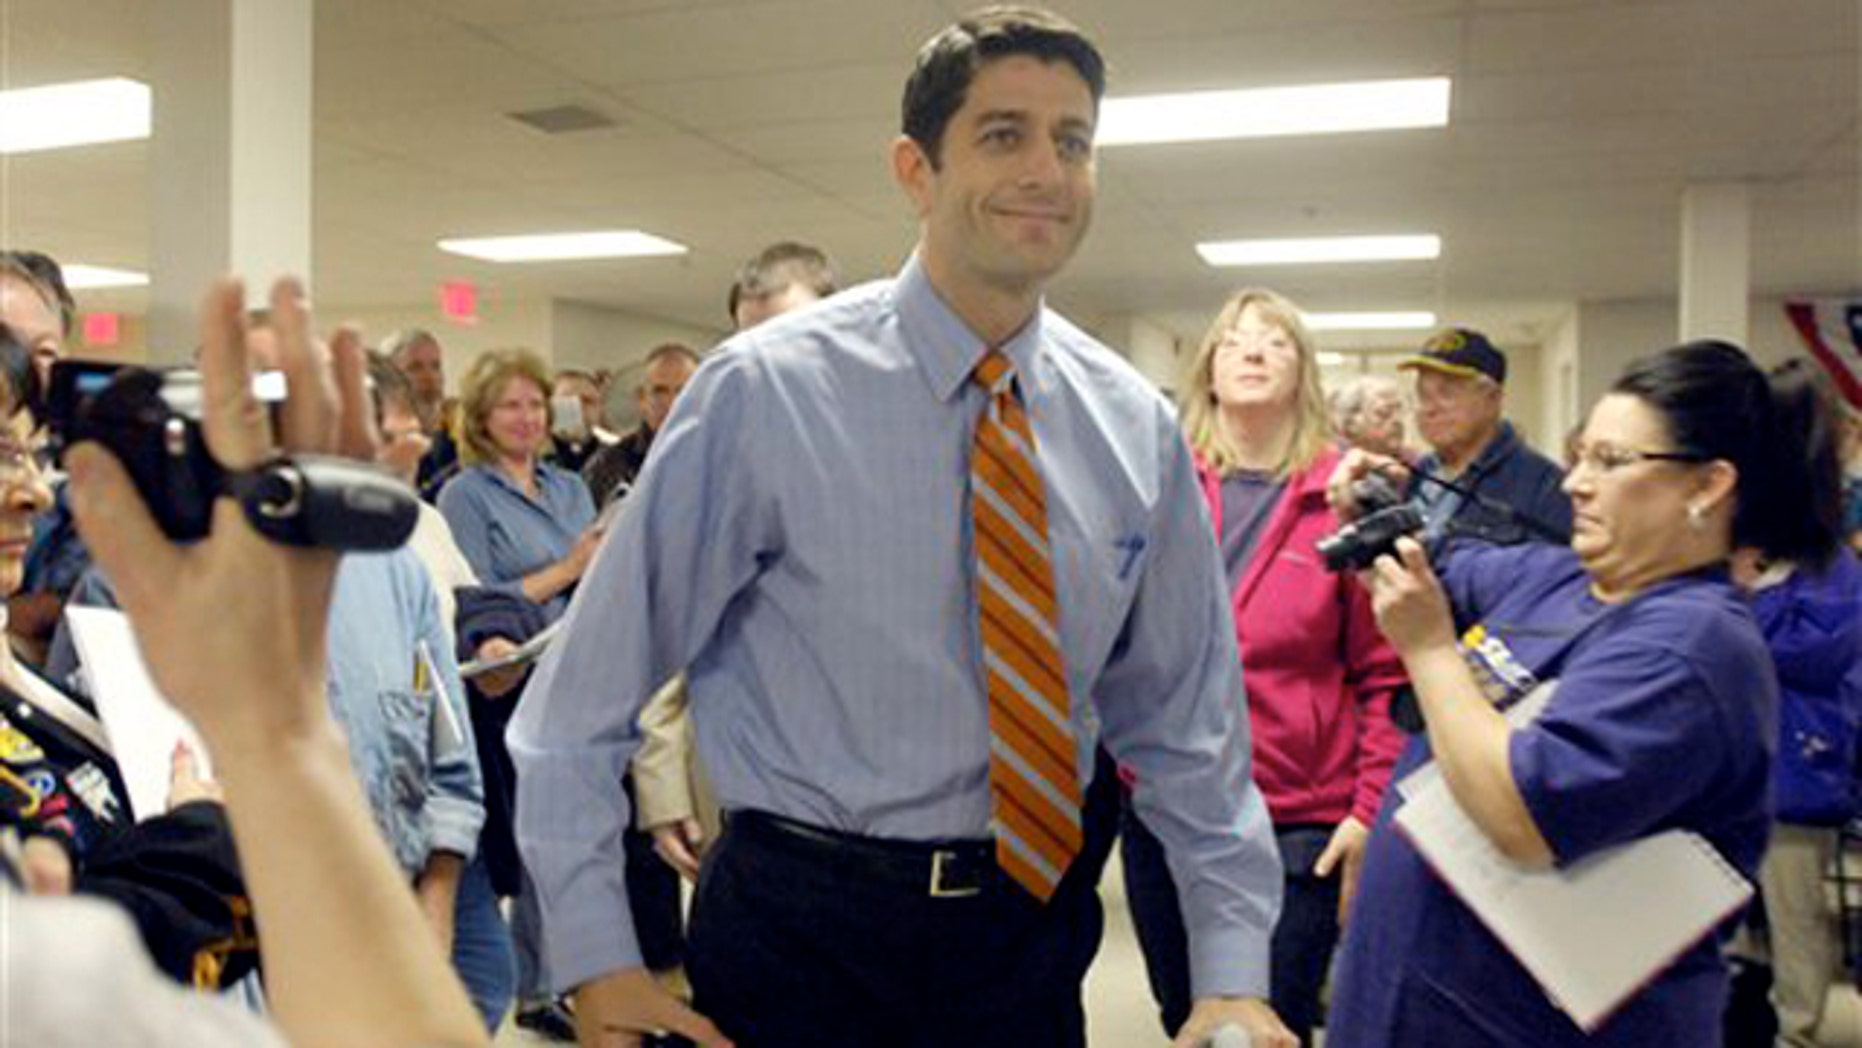 Rep. Paul Ryan arrives at a town hall meeting April 28 in Waterford, Wis.